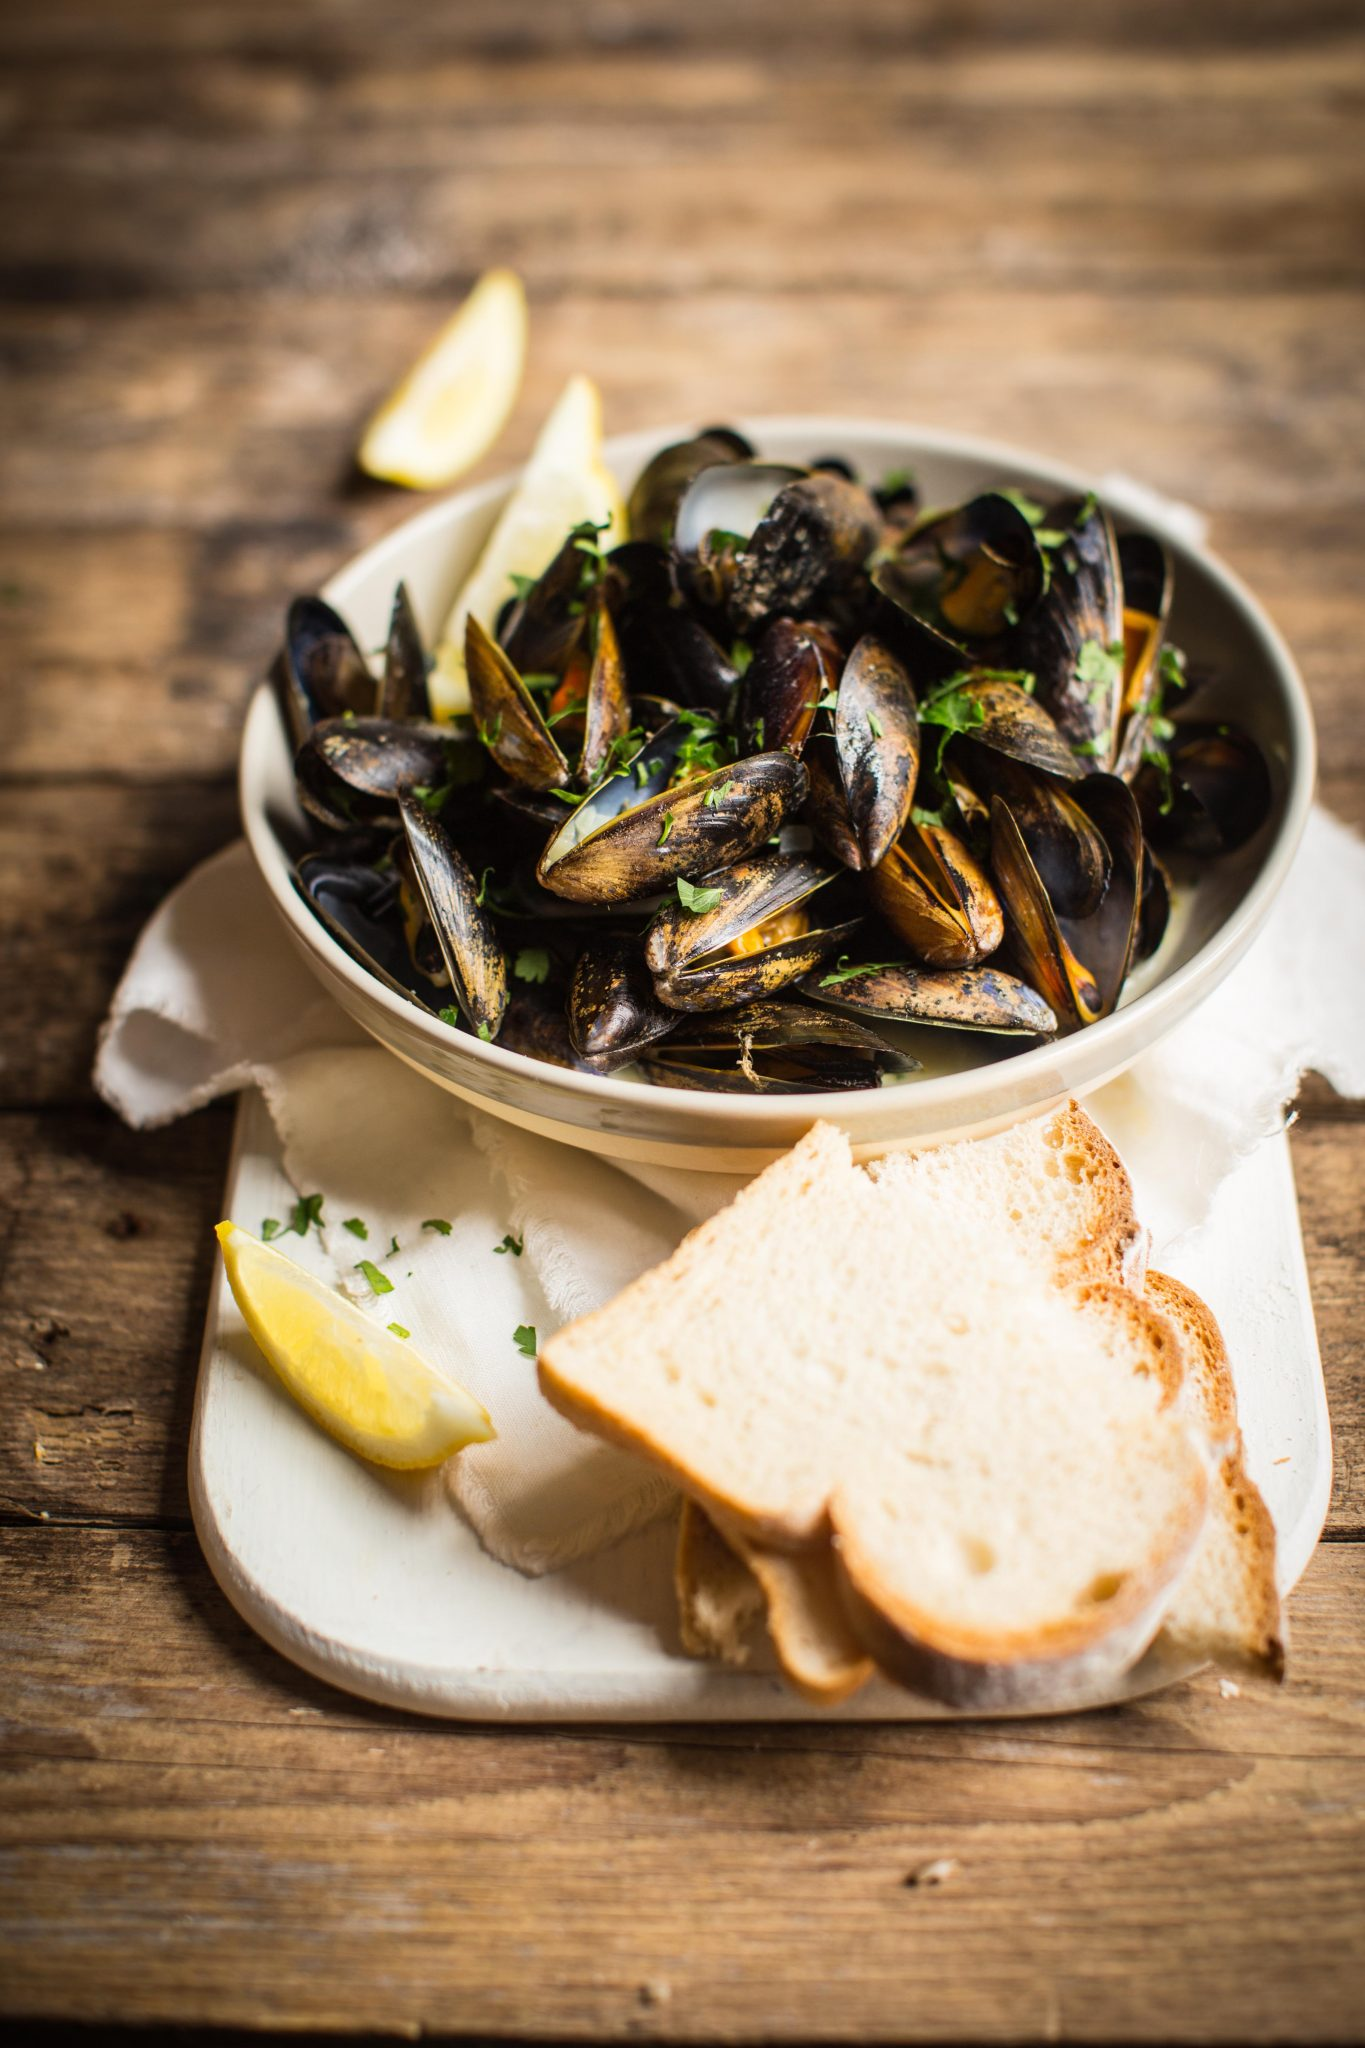 Moules Marniere: mussels steamed with white wine and shallots